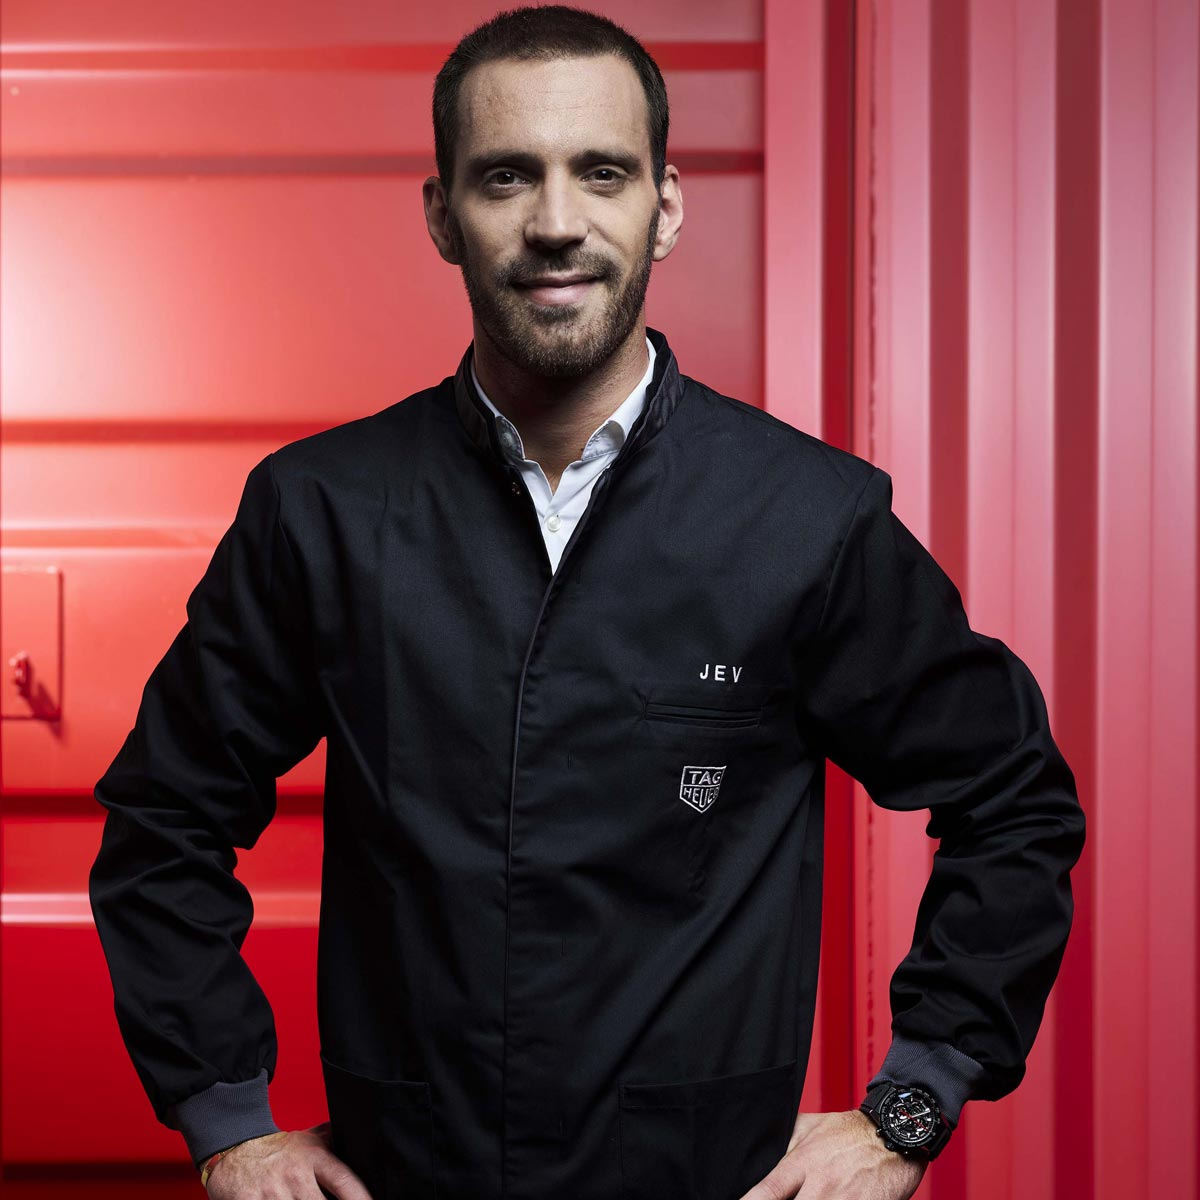 The Watch Quote: Photo - TAG Heuer announces Formula E driver Jean-Éric Vergne as its new brand ambassador